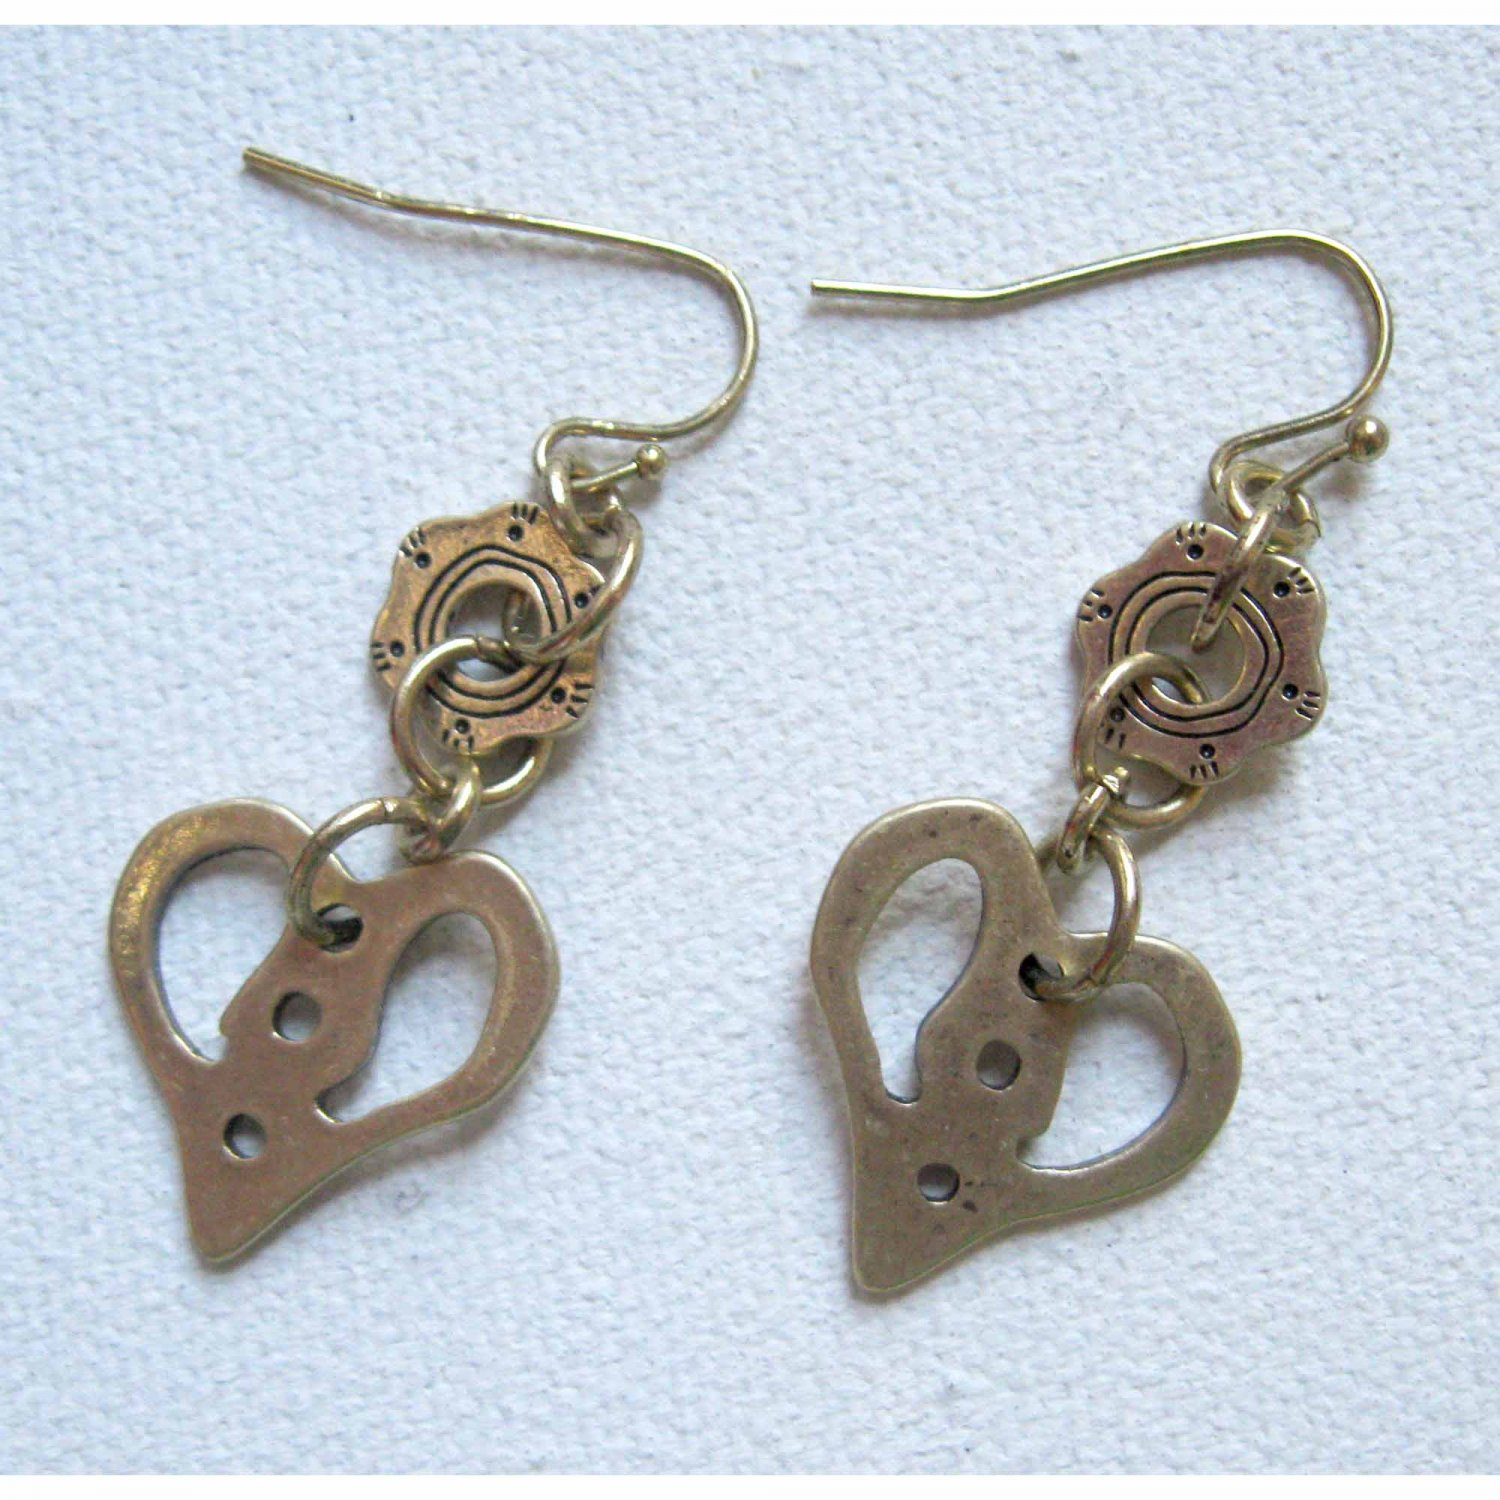 Gold earrings with heart fashion drop jewelry